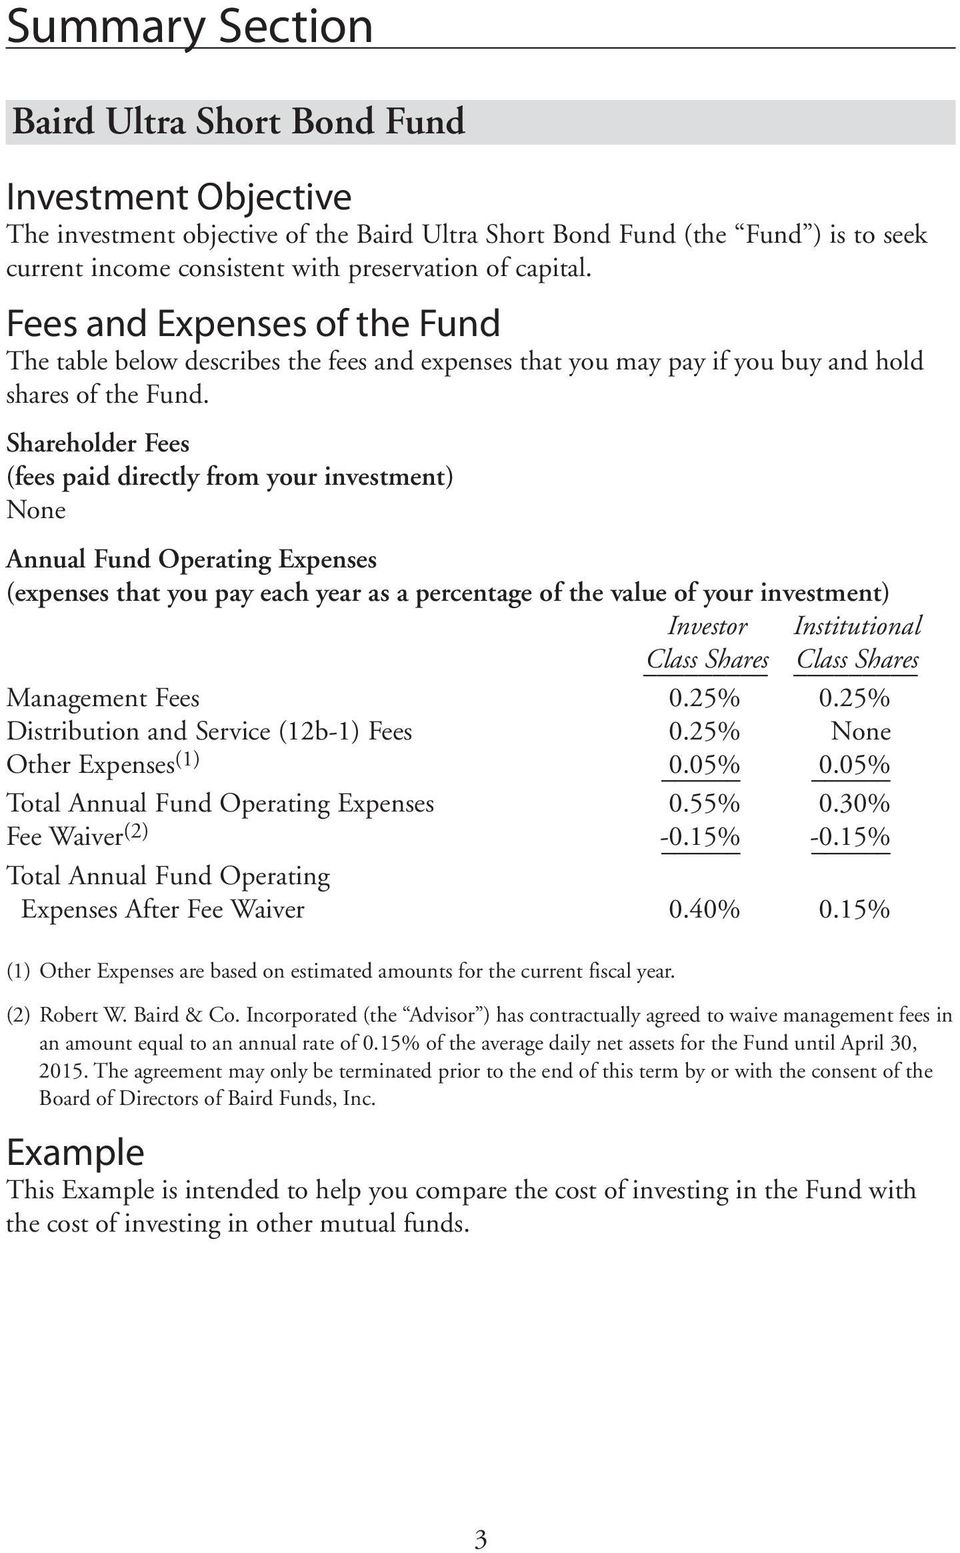 Shareholder Fees (fees paid directly from your investment) None Annual Fund Operating Expenses (expenses that you pay each year as a percentage of the value of your investment) Investor Institutional